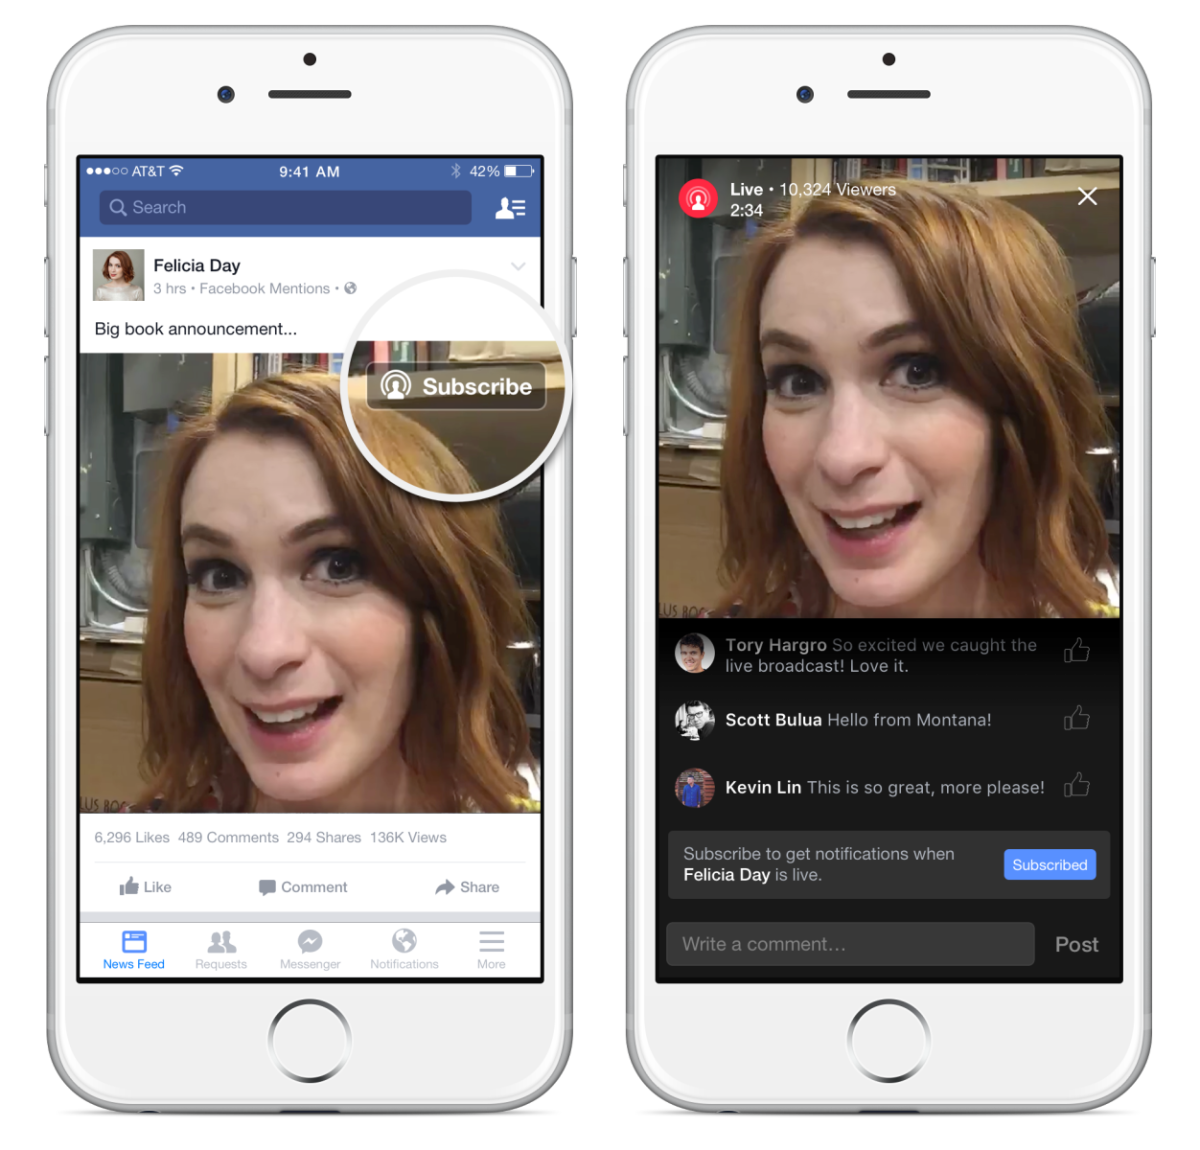 Facebook will now tell you when your favorite celebrity starts a livestream